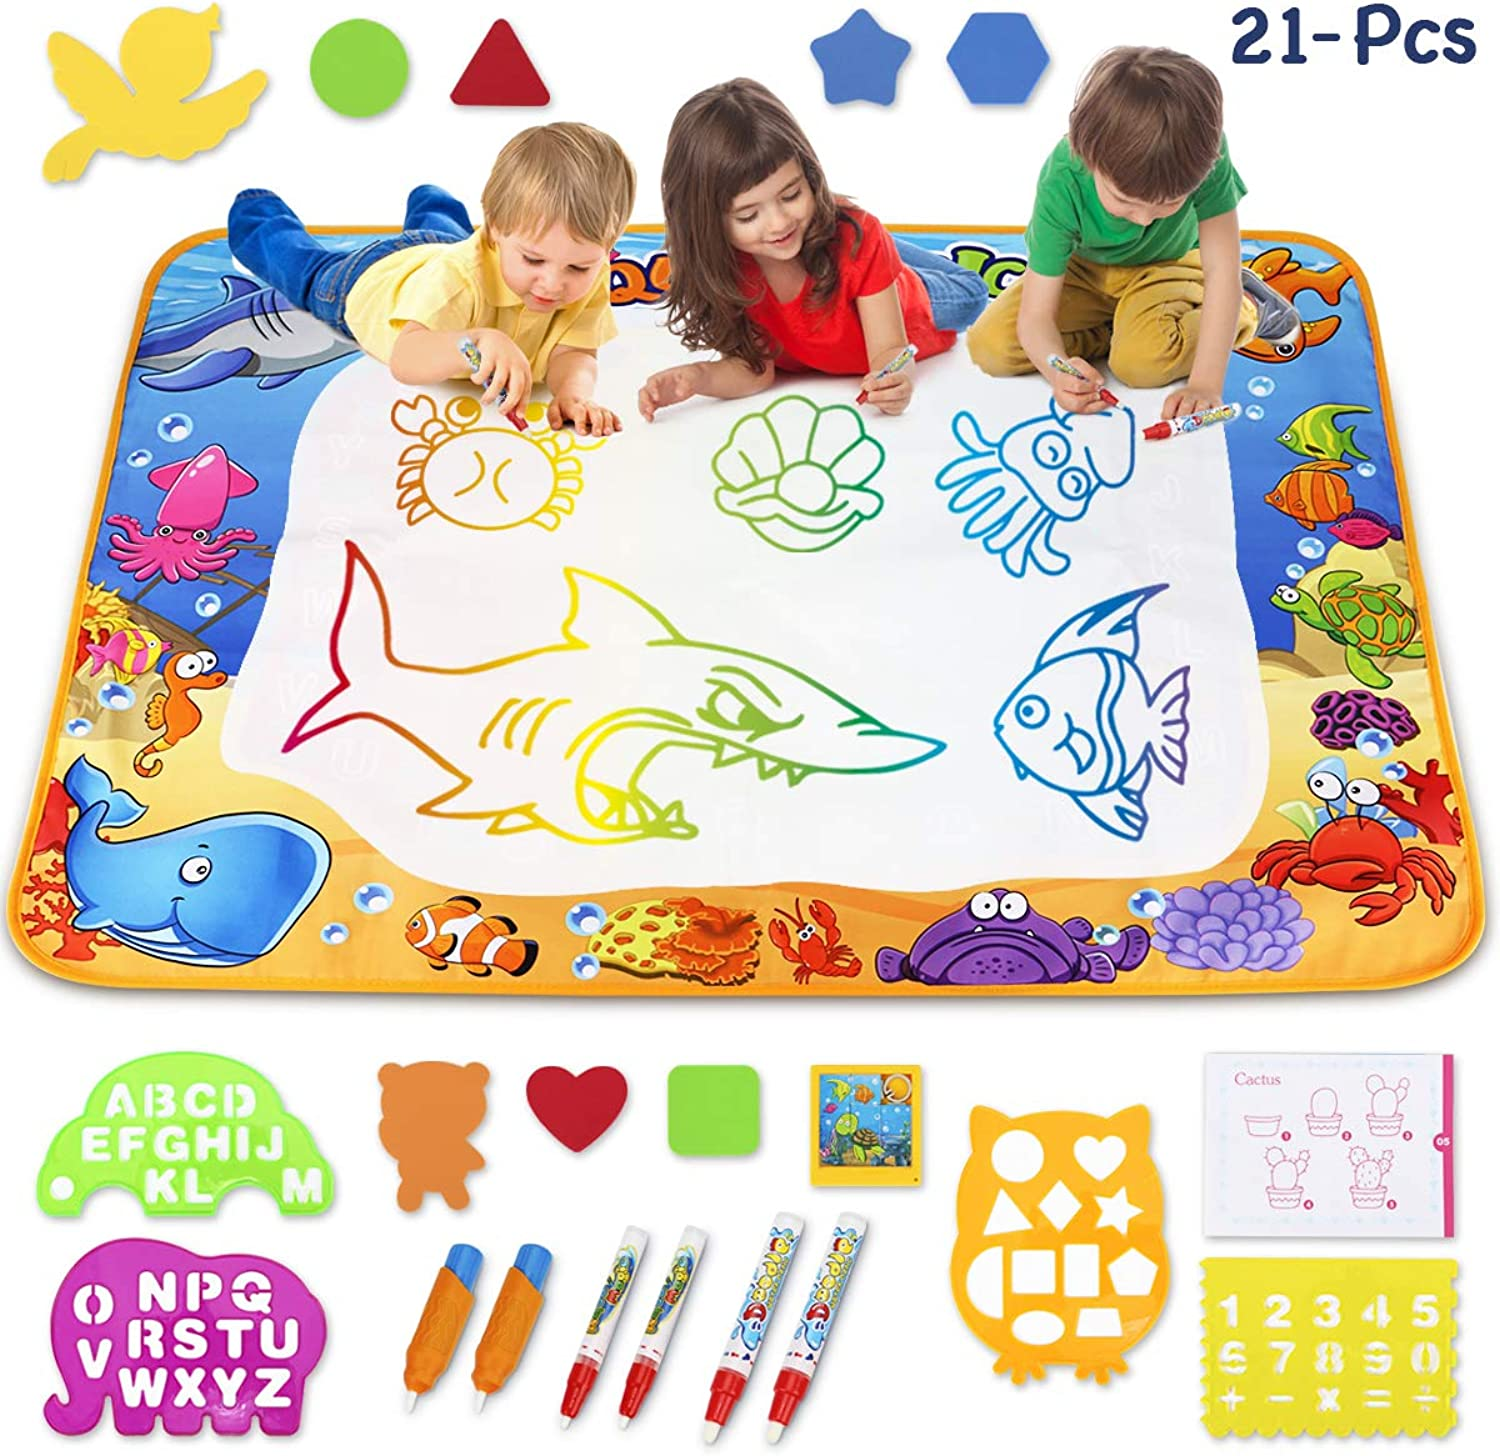 TOYK Aqua Magic Mat  Kids Painting Writing Doodle Board Toy  color Doodle Drawing Mat Bring Magic Pens Educational Toys for Age 1 2 3 4 5 6 7 8 9 10 11 12 Year Old Girls Boys Age Toddler Gift